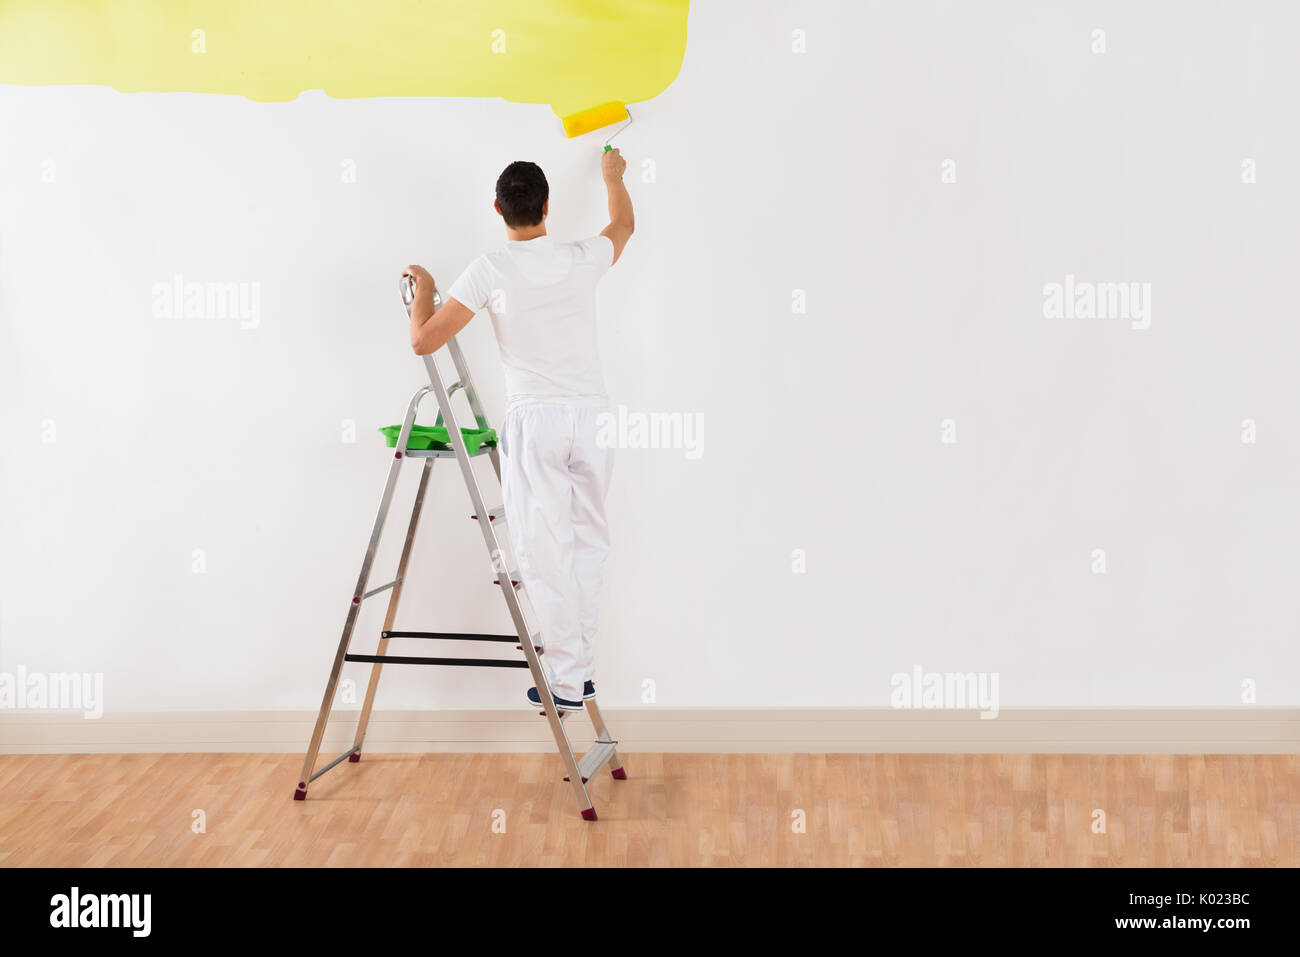 Rear view of young man painting wall with yellow paint roller at home - Stock Image